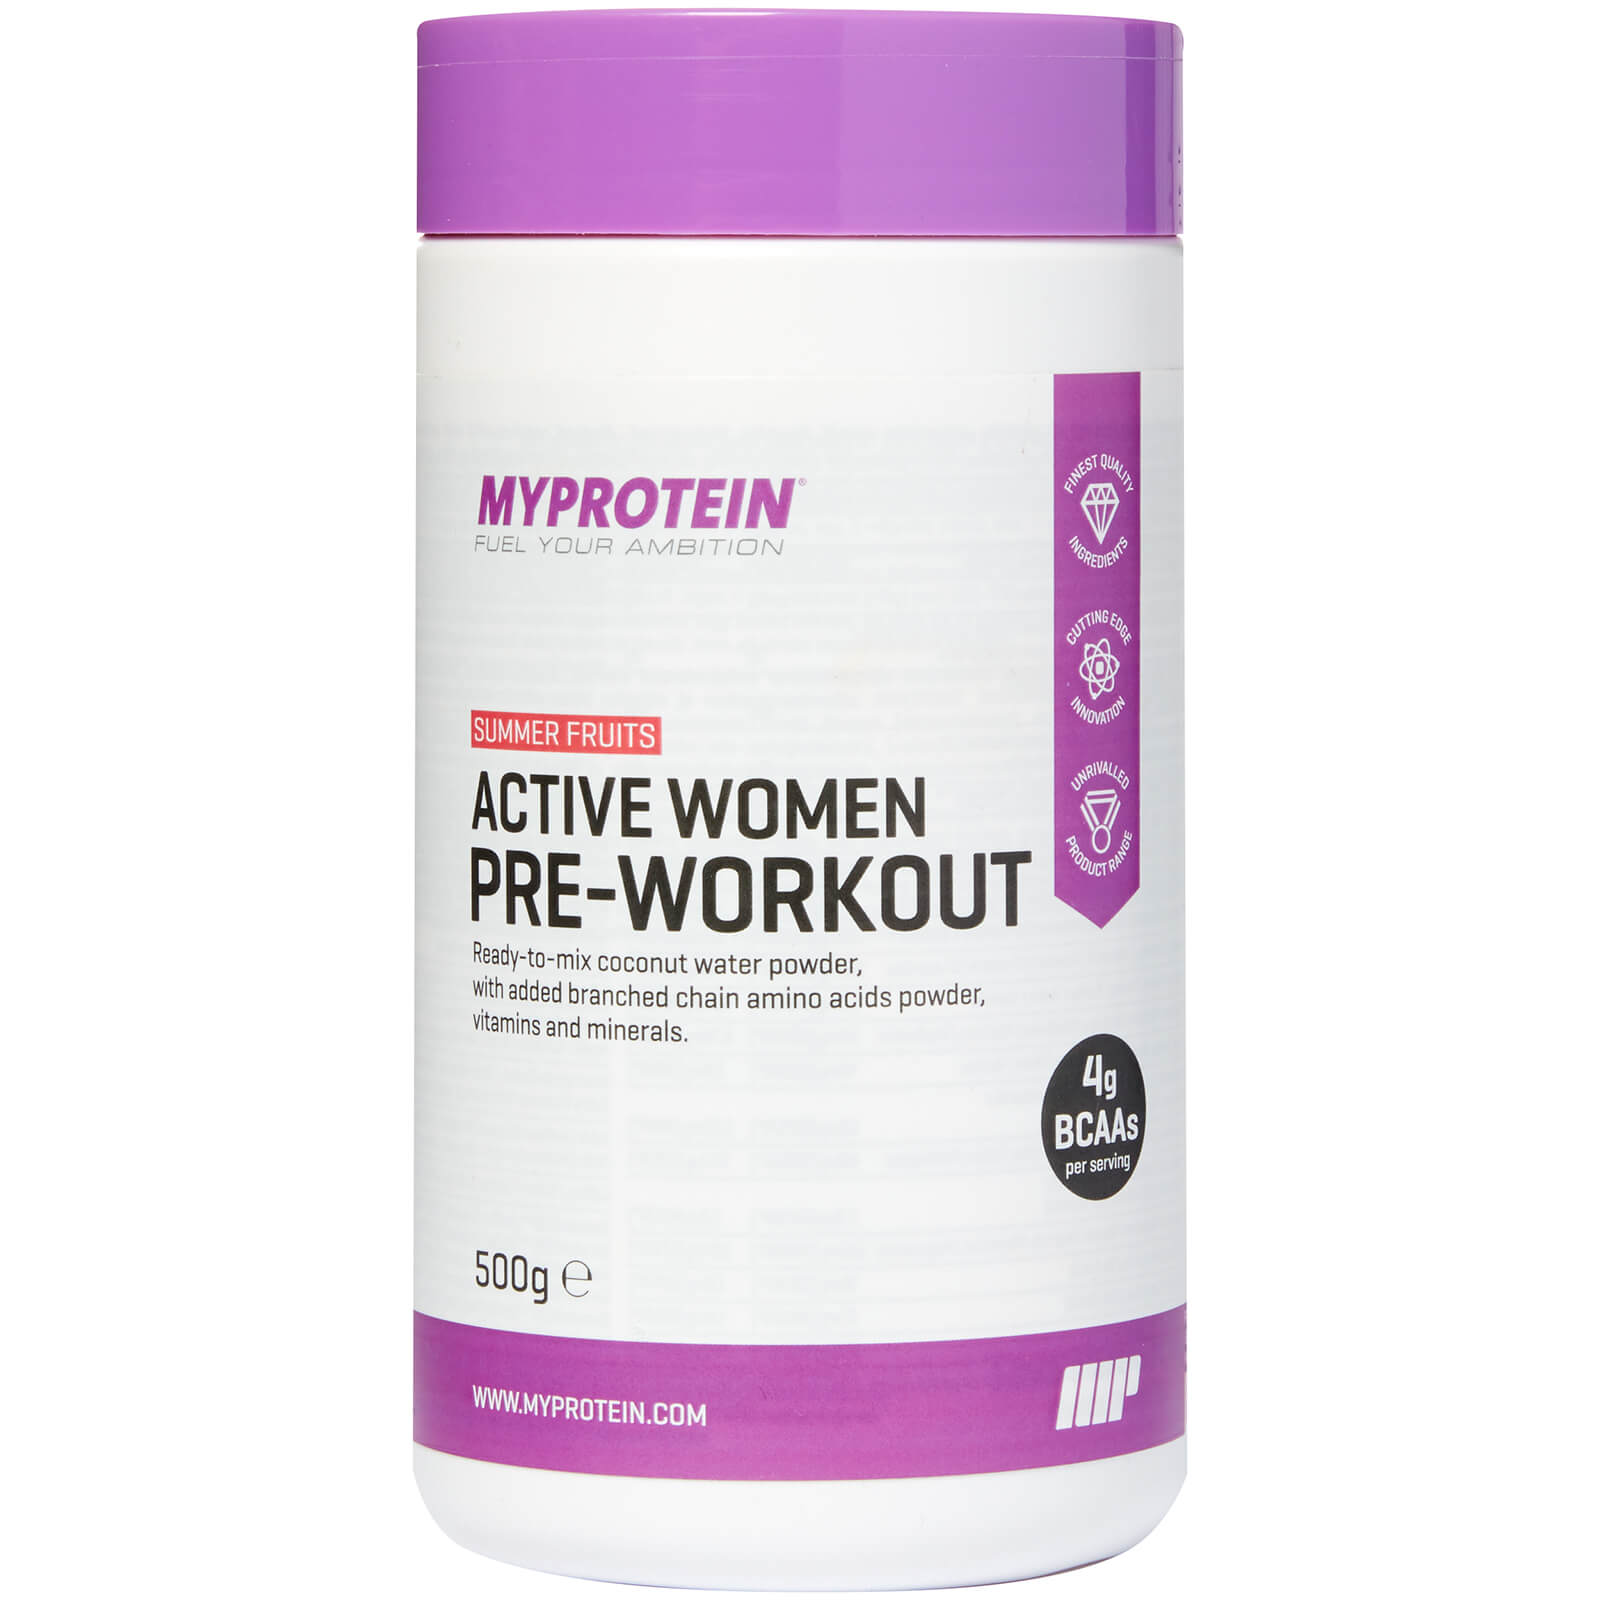 Active Women Pre-Workout, 500g, Summerfruits